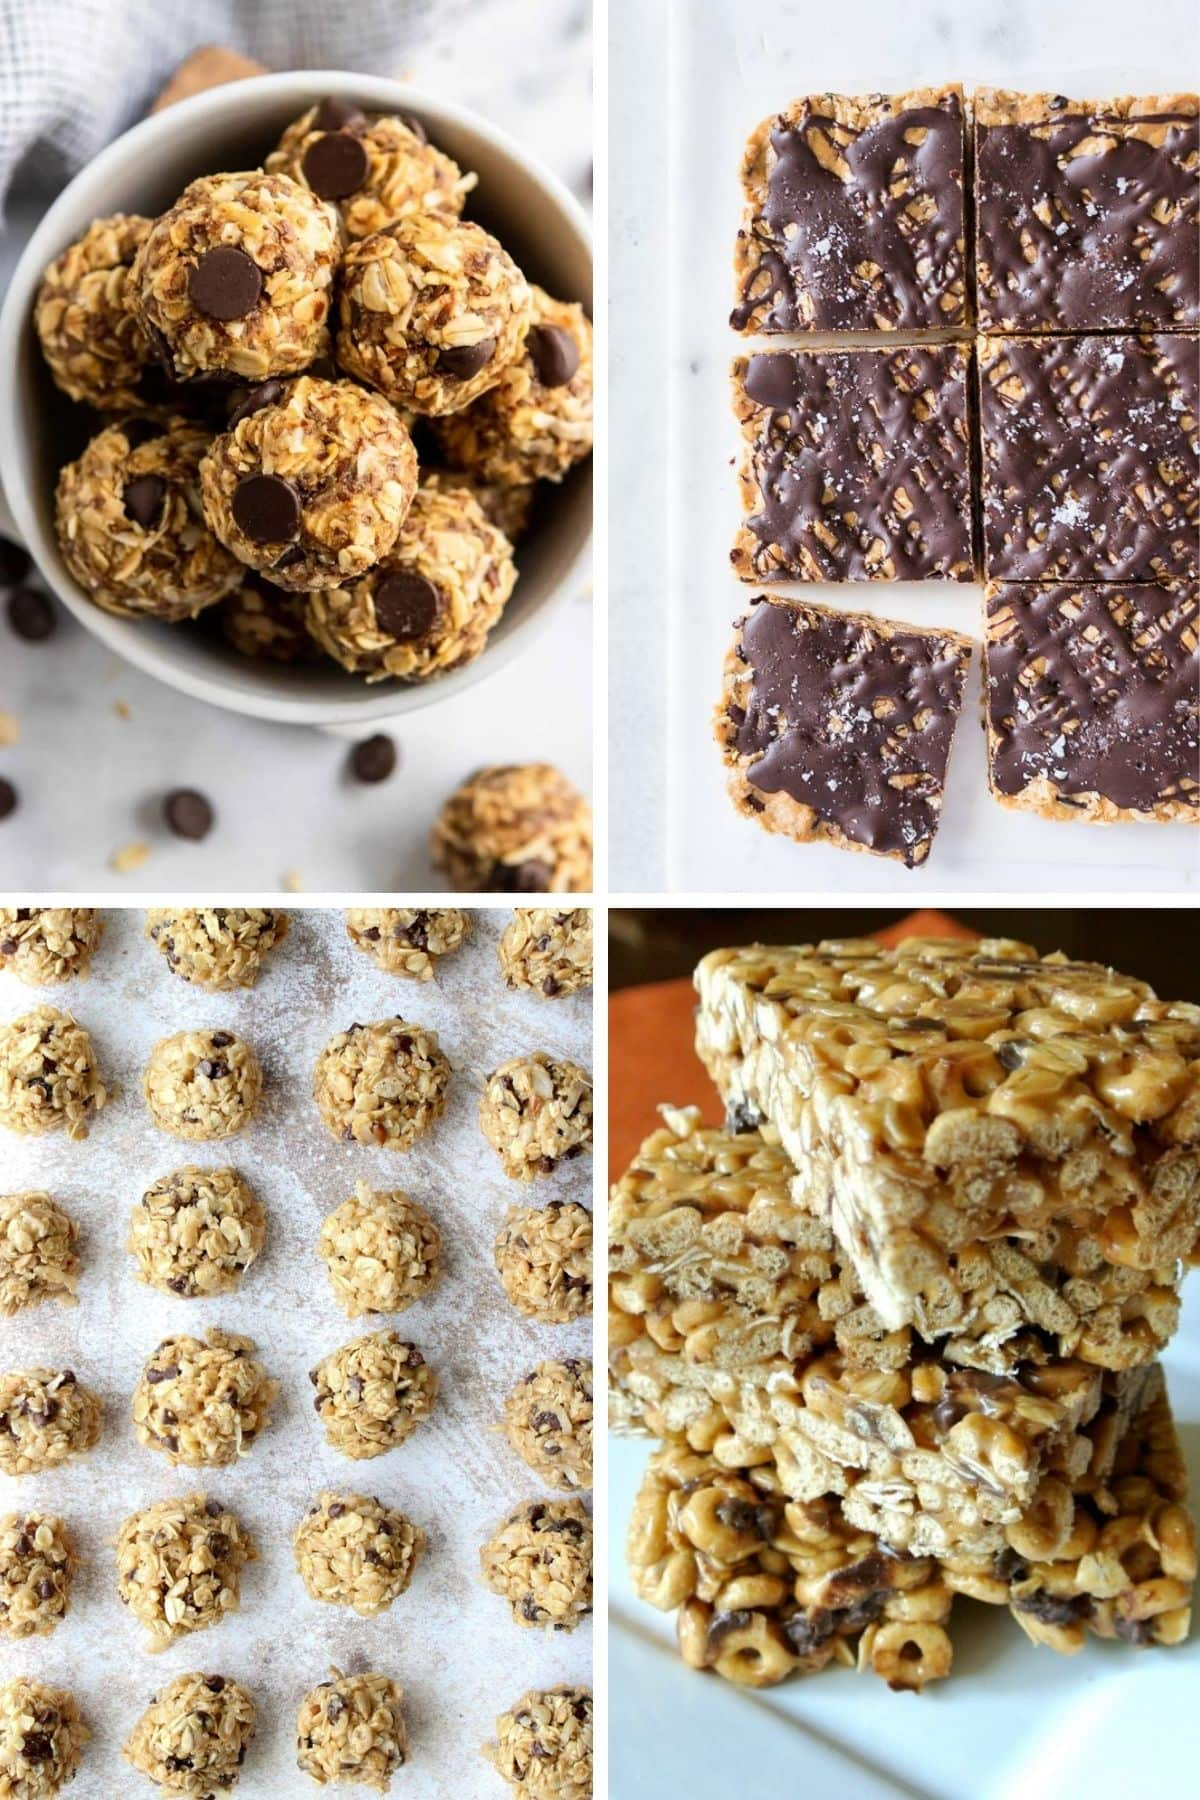 Collage of healthy no bake bars, balls and bites.